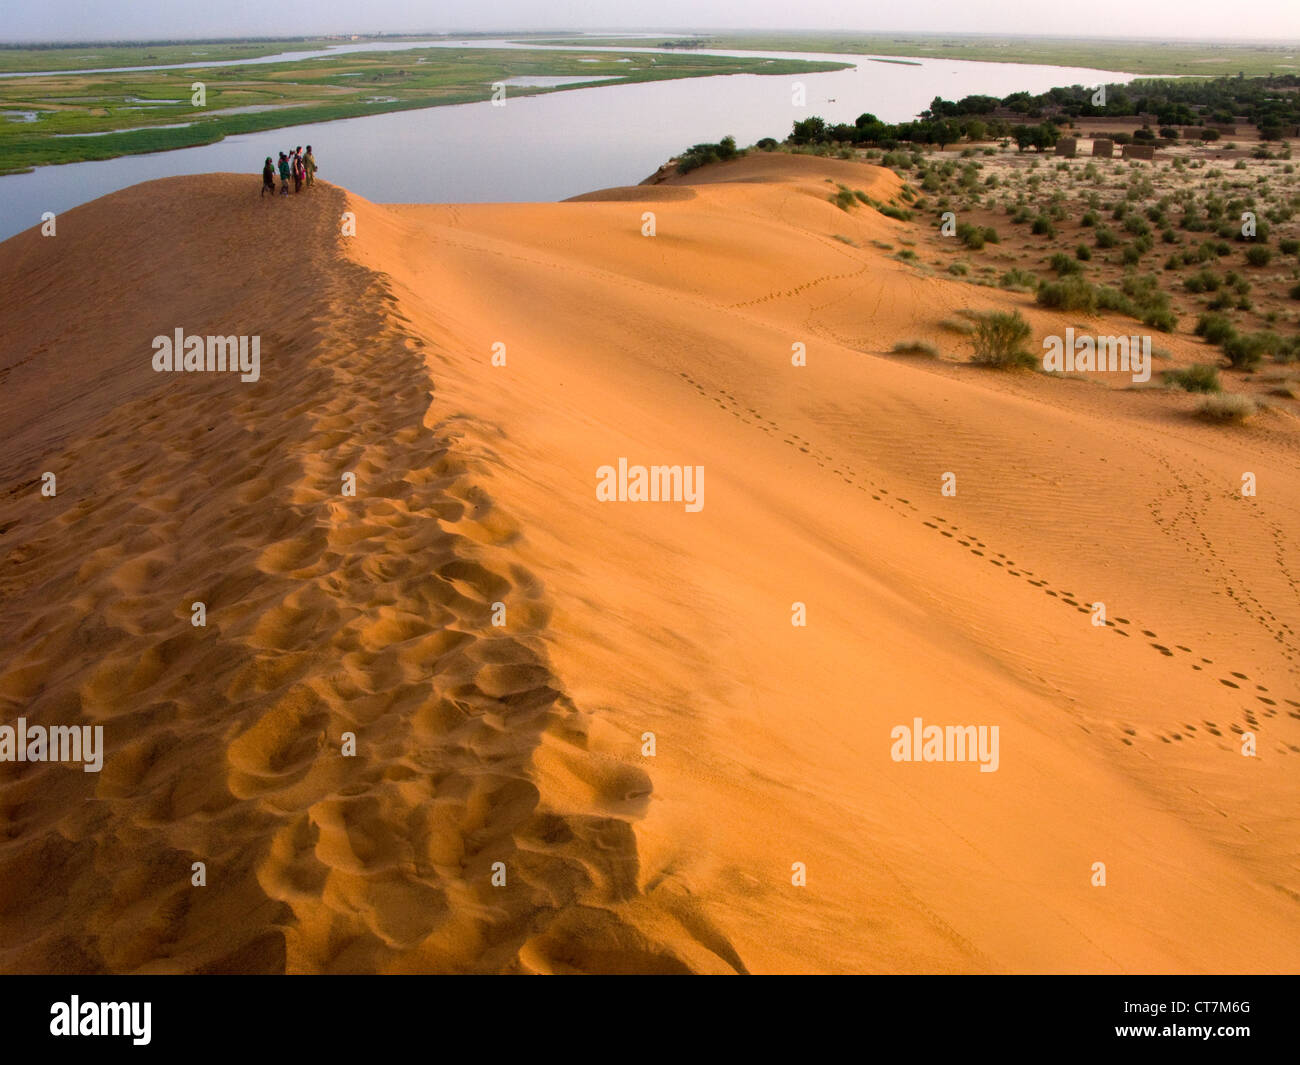 The Dune of Koima ( Dune Rose ) by Niger river, Gao region. Mali .West Africa. - Stock Image